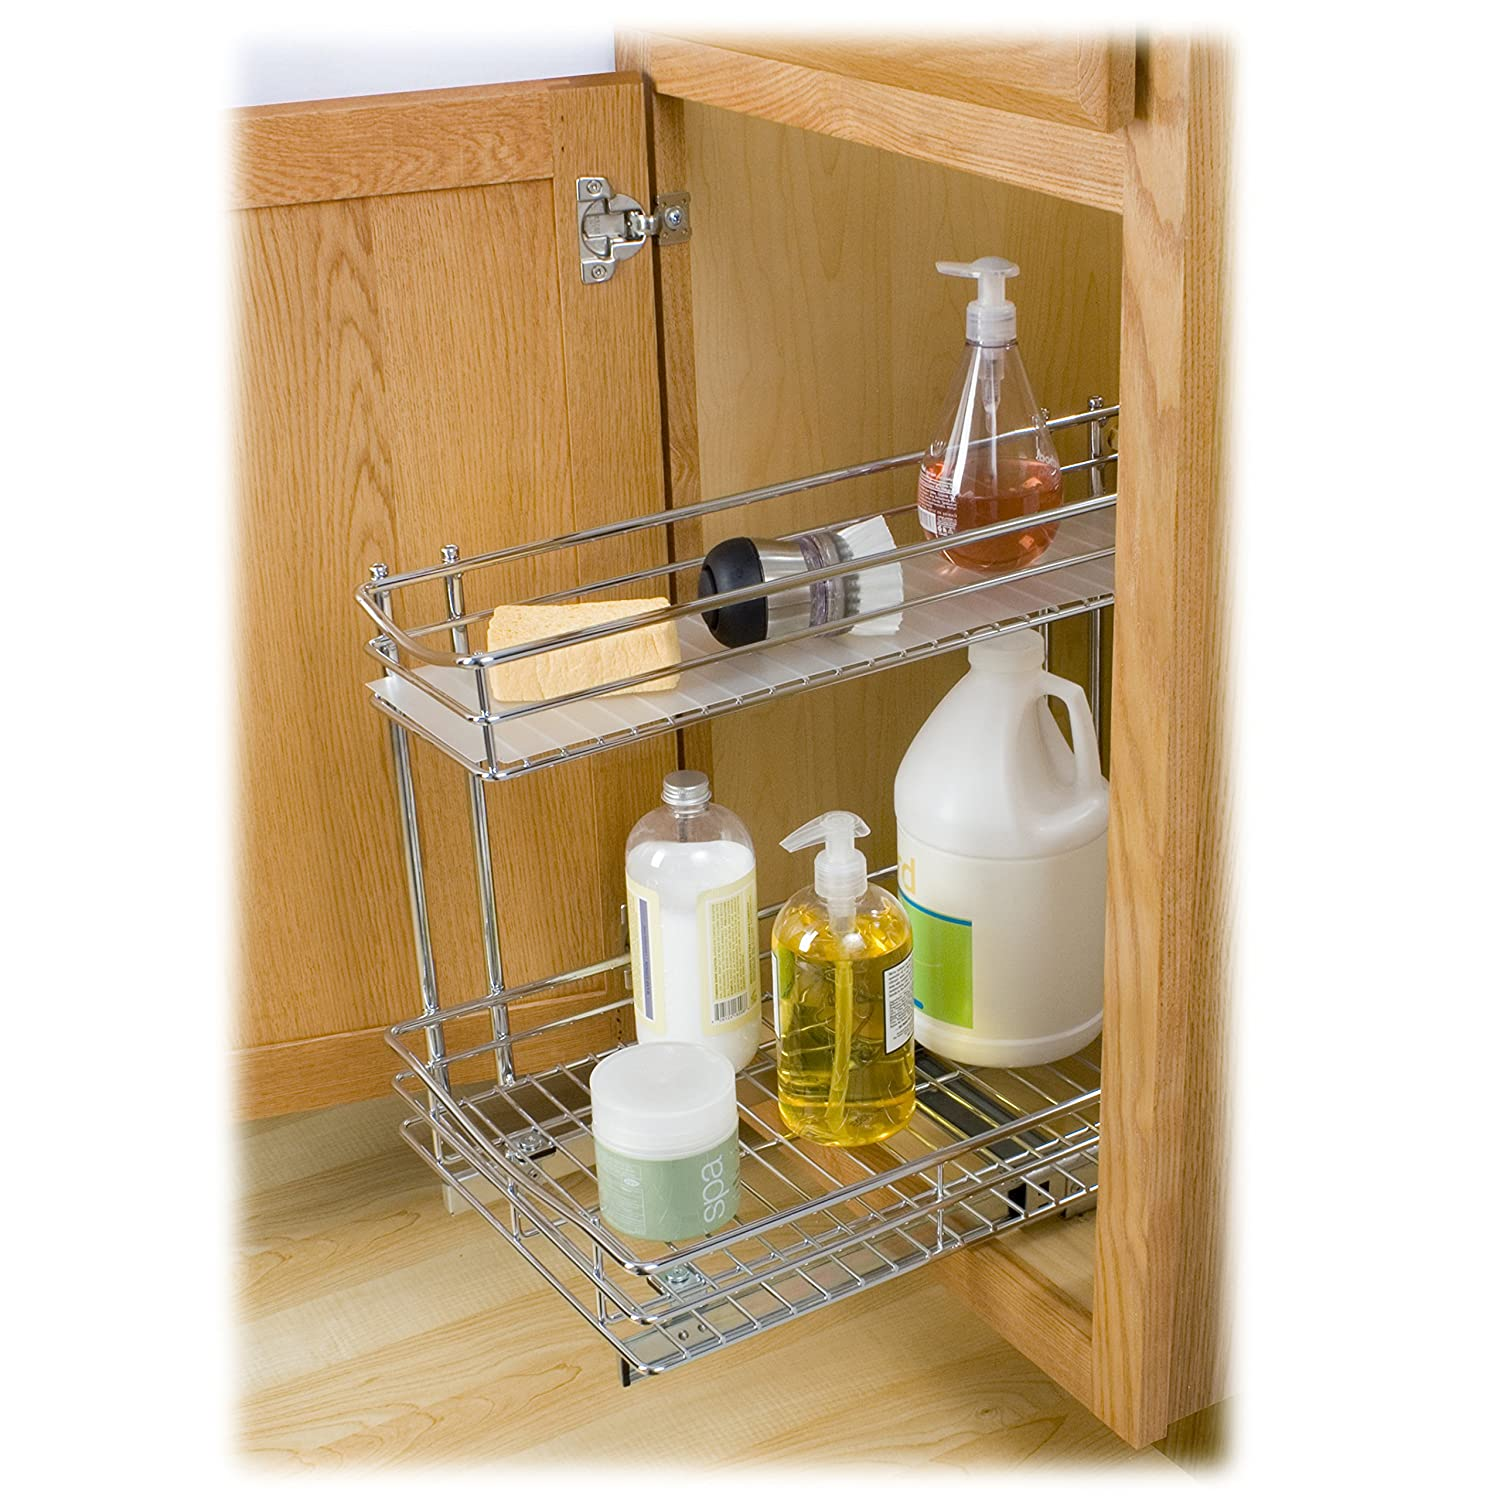 Lynk roll out under sink cabinet organizer pull out two tier sliding - Amazon Com Lynk Professional Roll Out Under Sink Cabinet Organizer Pull Out Two Tier Sliding Shelf Chrome Multiple Sizes Home Kitchen